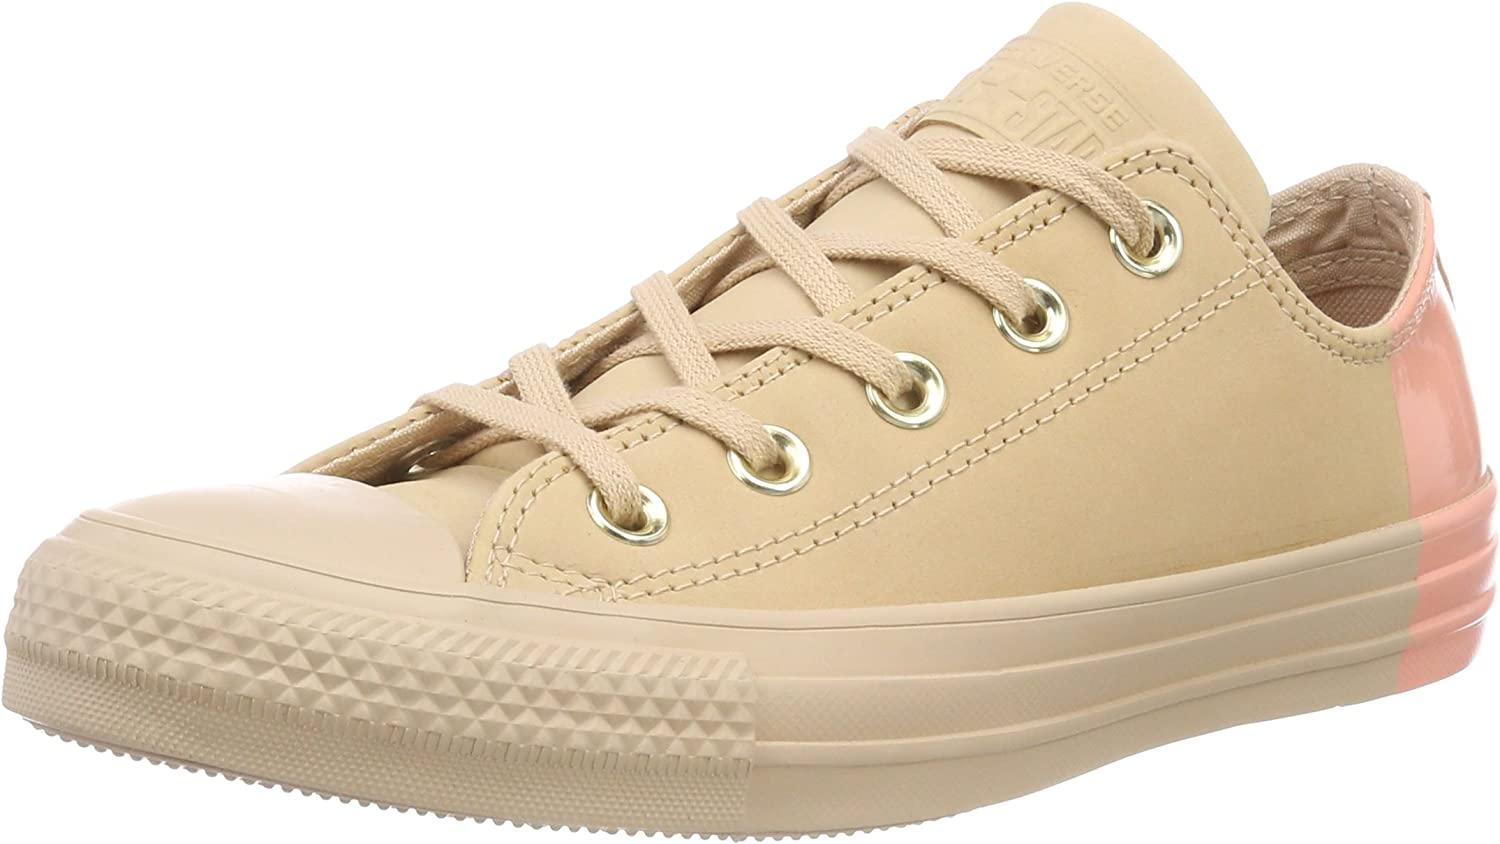 Converse Adults' Chuck Taylor All Star Ox Fitness shoes